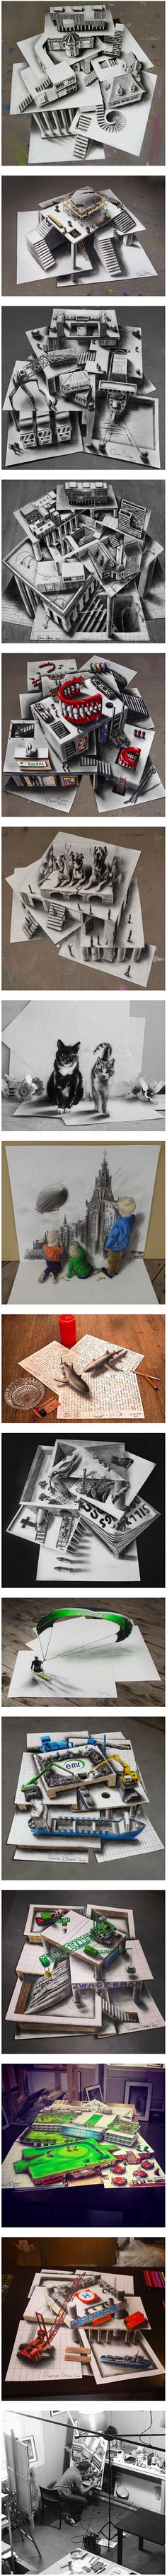 Pencil and ink sketches by Dutch artist Ramon Bruin (aka JJK Airbrush) aren't your ordinary doodles. The illustrator takes drawing to a whole other level by creating anamorphic illusions across multiple sheets of paper that are haphazardly layered atop one another. Even more impressive, Bruin manages to trick the viewer into believing they are looking at something that has great depth and is multiple stories tall.